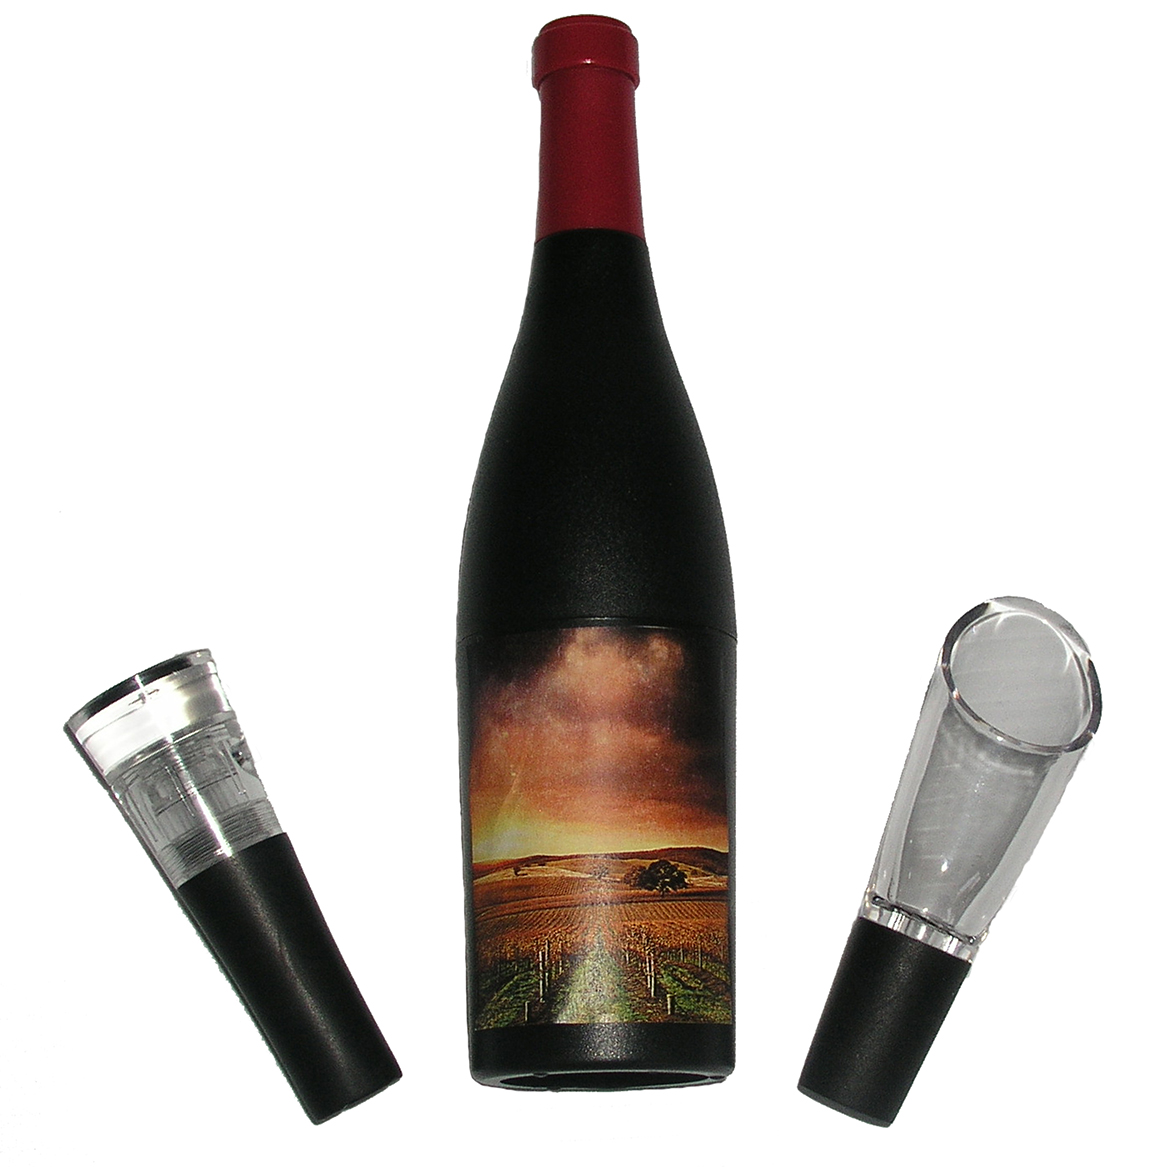 3 Piece Wine Bottle-Shaped Corkscrew Gift Set